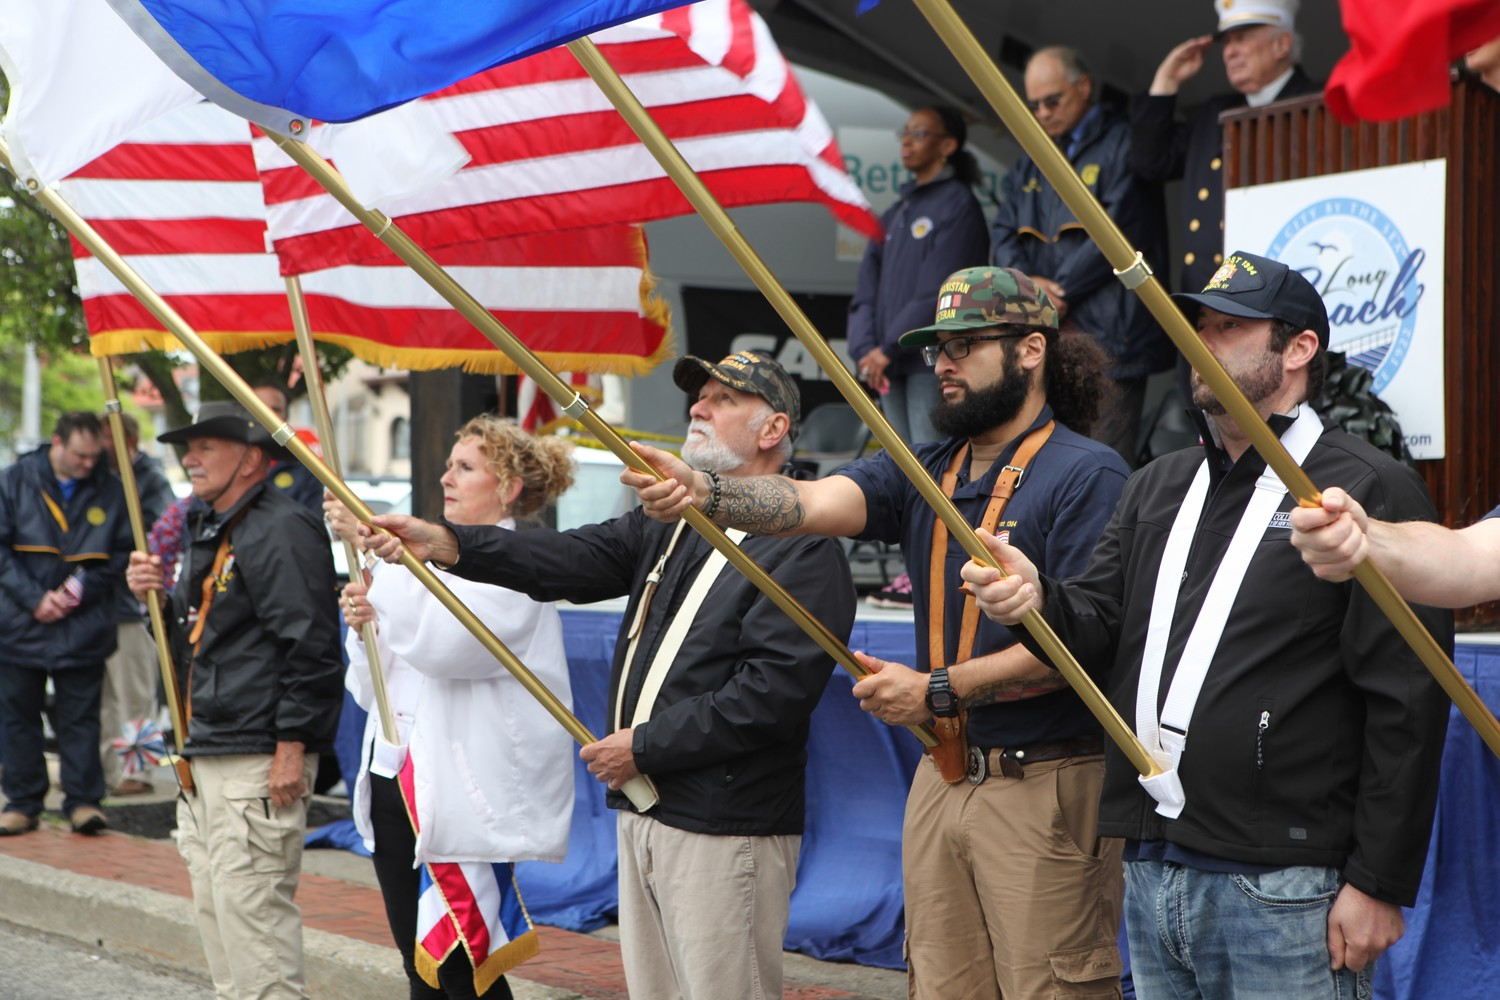 VFW members paid tribute to the country's fallen soldiers